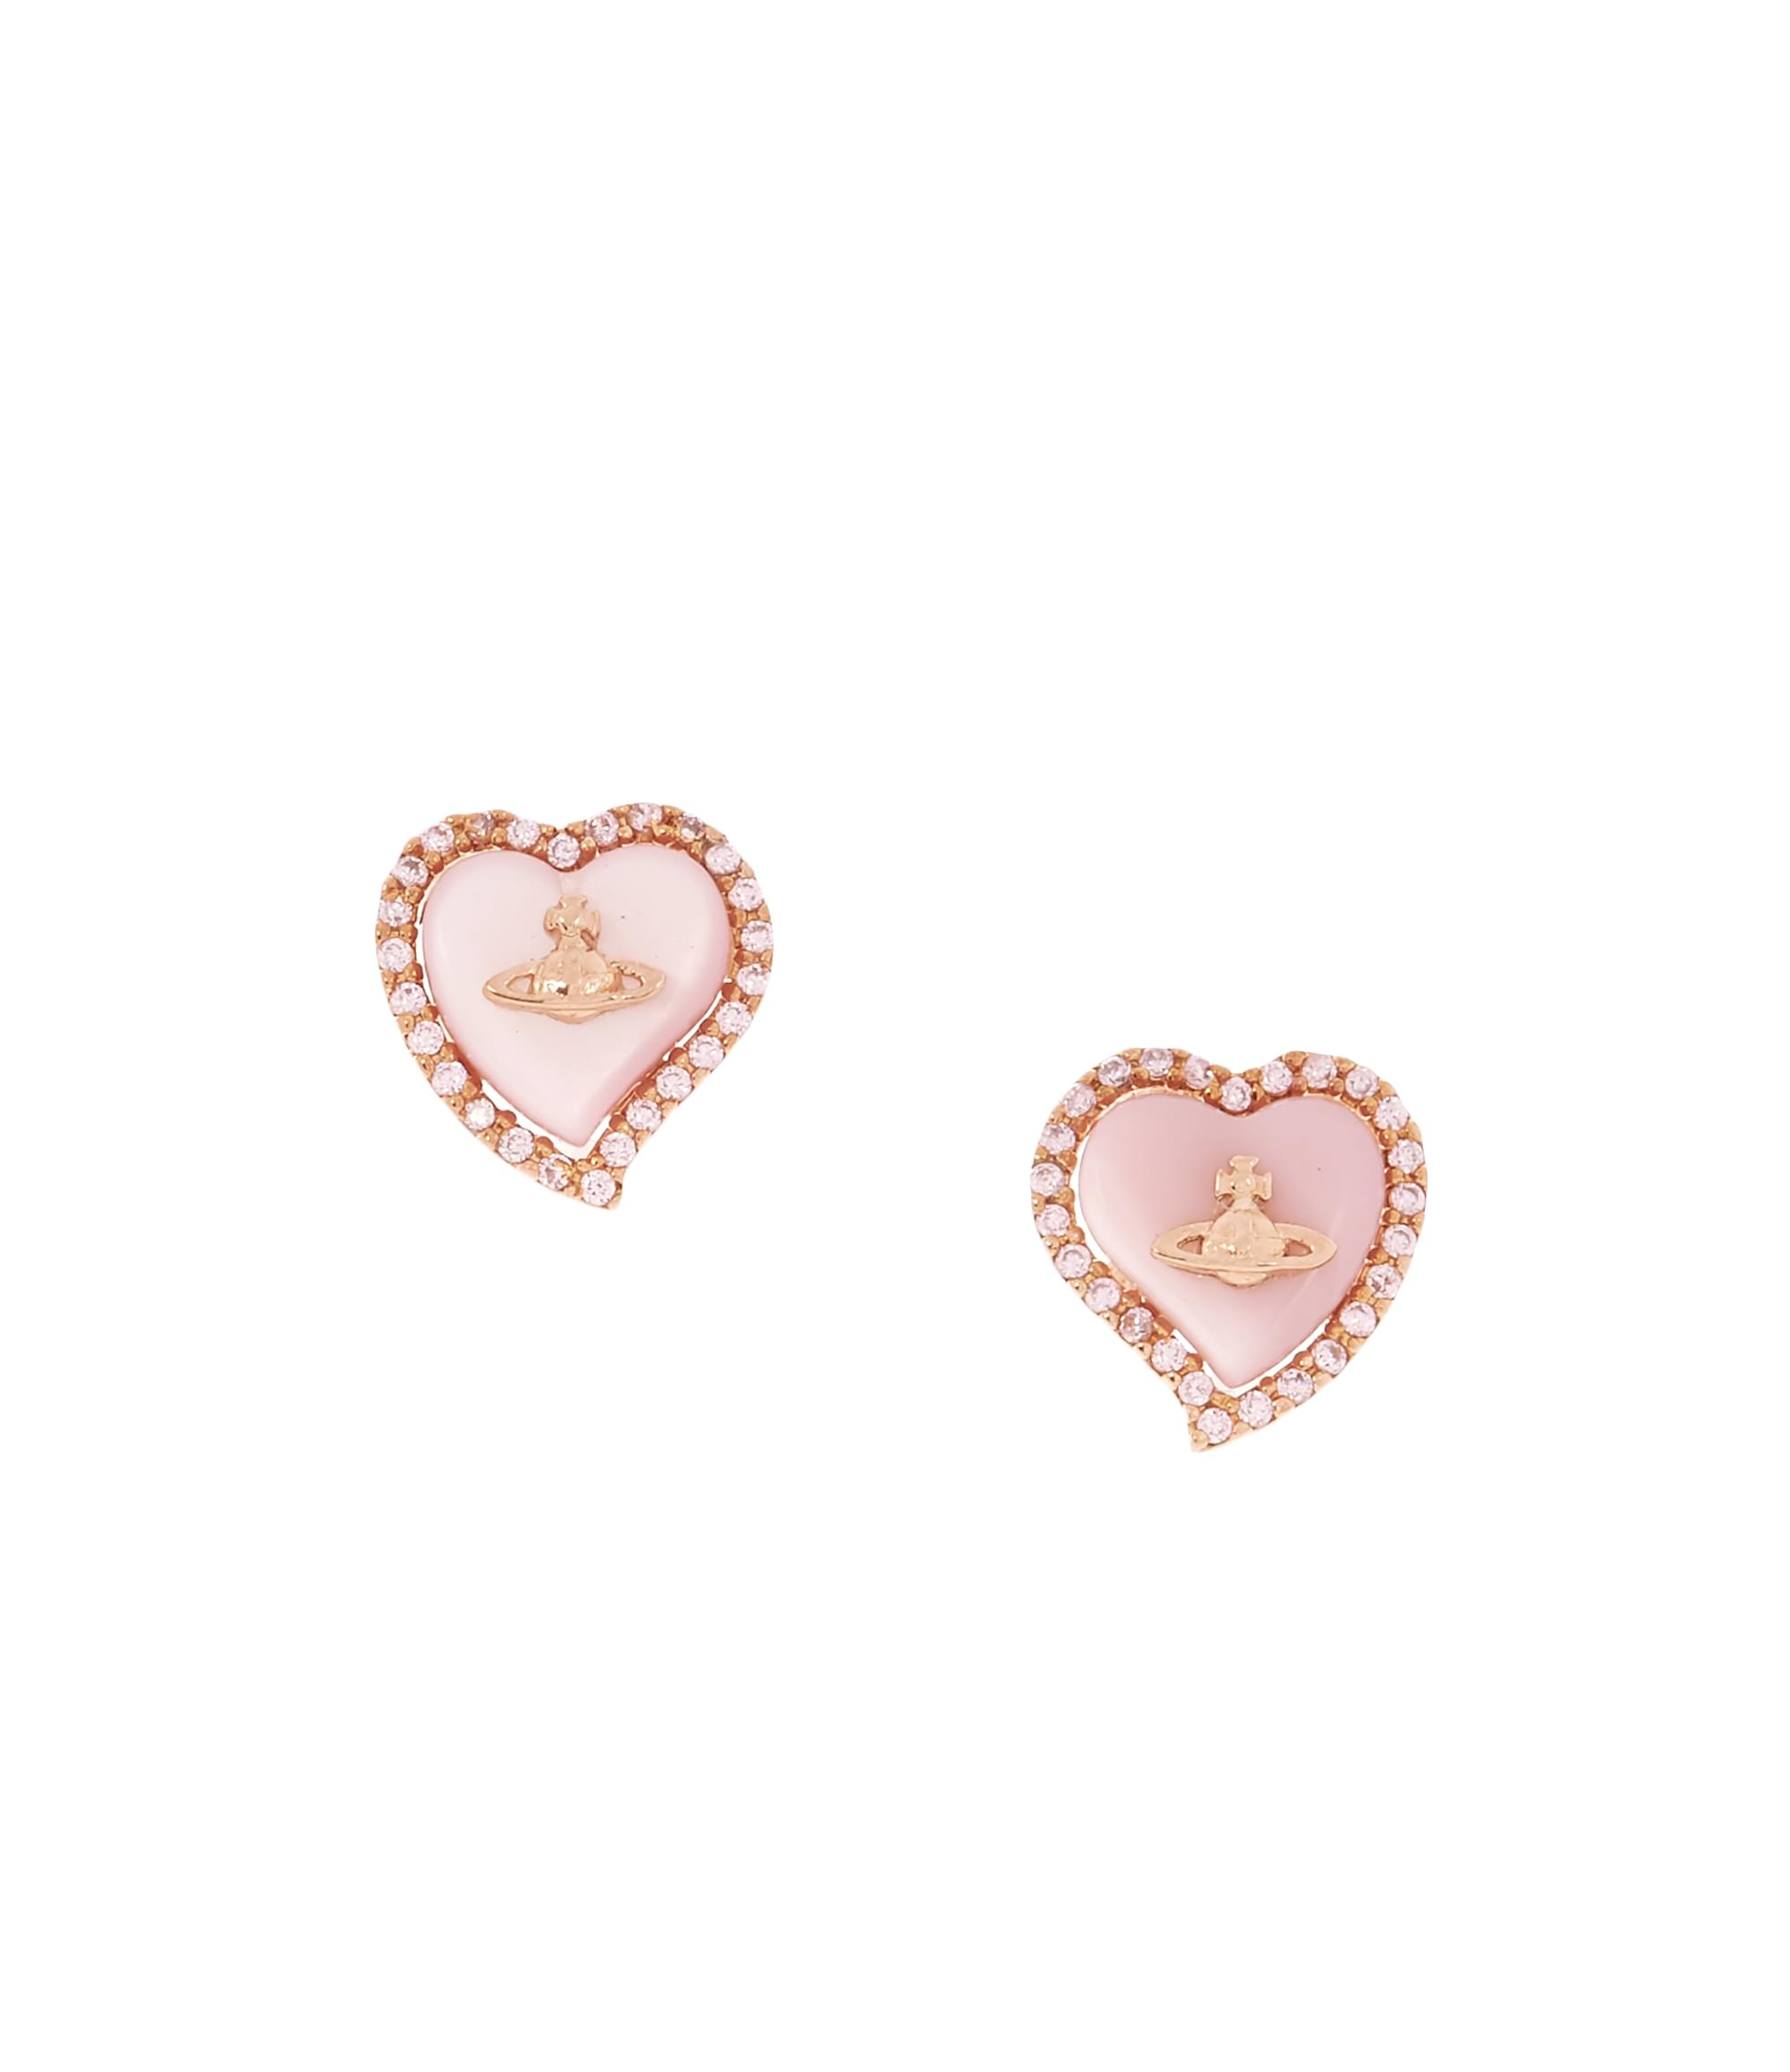 Vivienne Westwood Leontyne Heart Earrings Pink